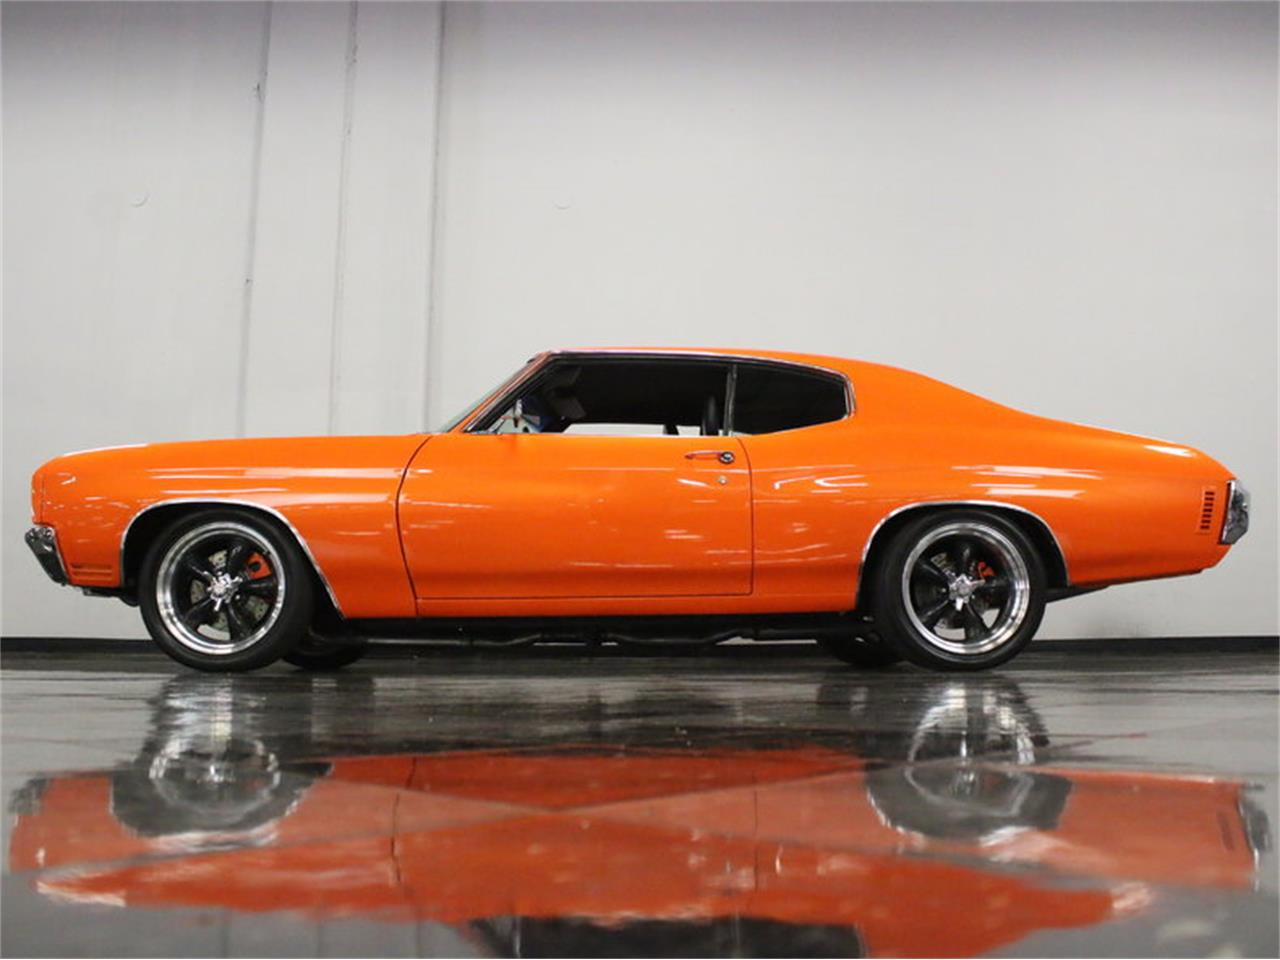 Large Picture of Classic '70 Chevrolet Chevelle SS Pro Touring located in Ft Worth Texas - $69,995.00 Offered by Streetside Classics - Dallas / Fort Worth - L8AH